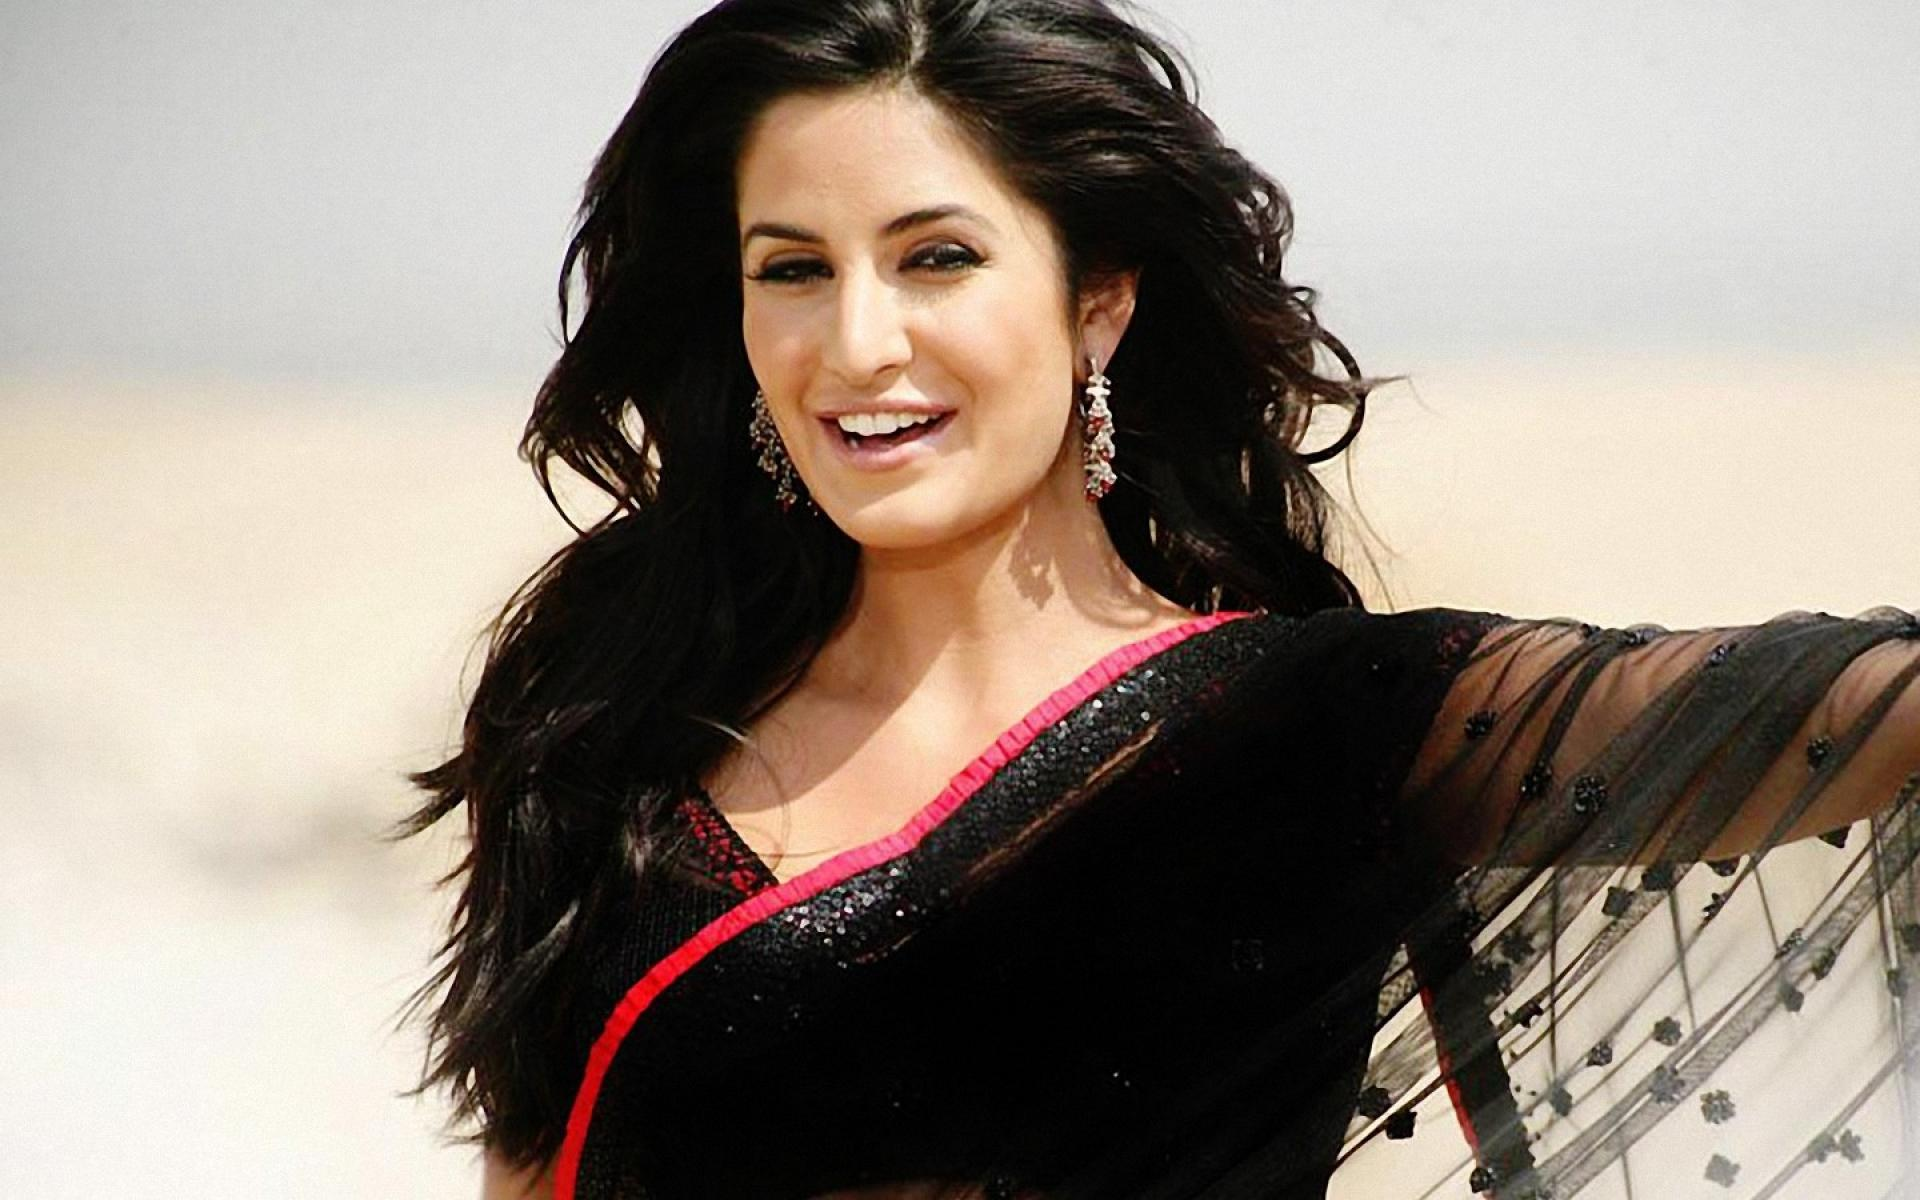 Hd Wallpapers Of Katrina Kaif Wallpaper Cave